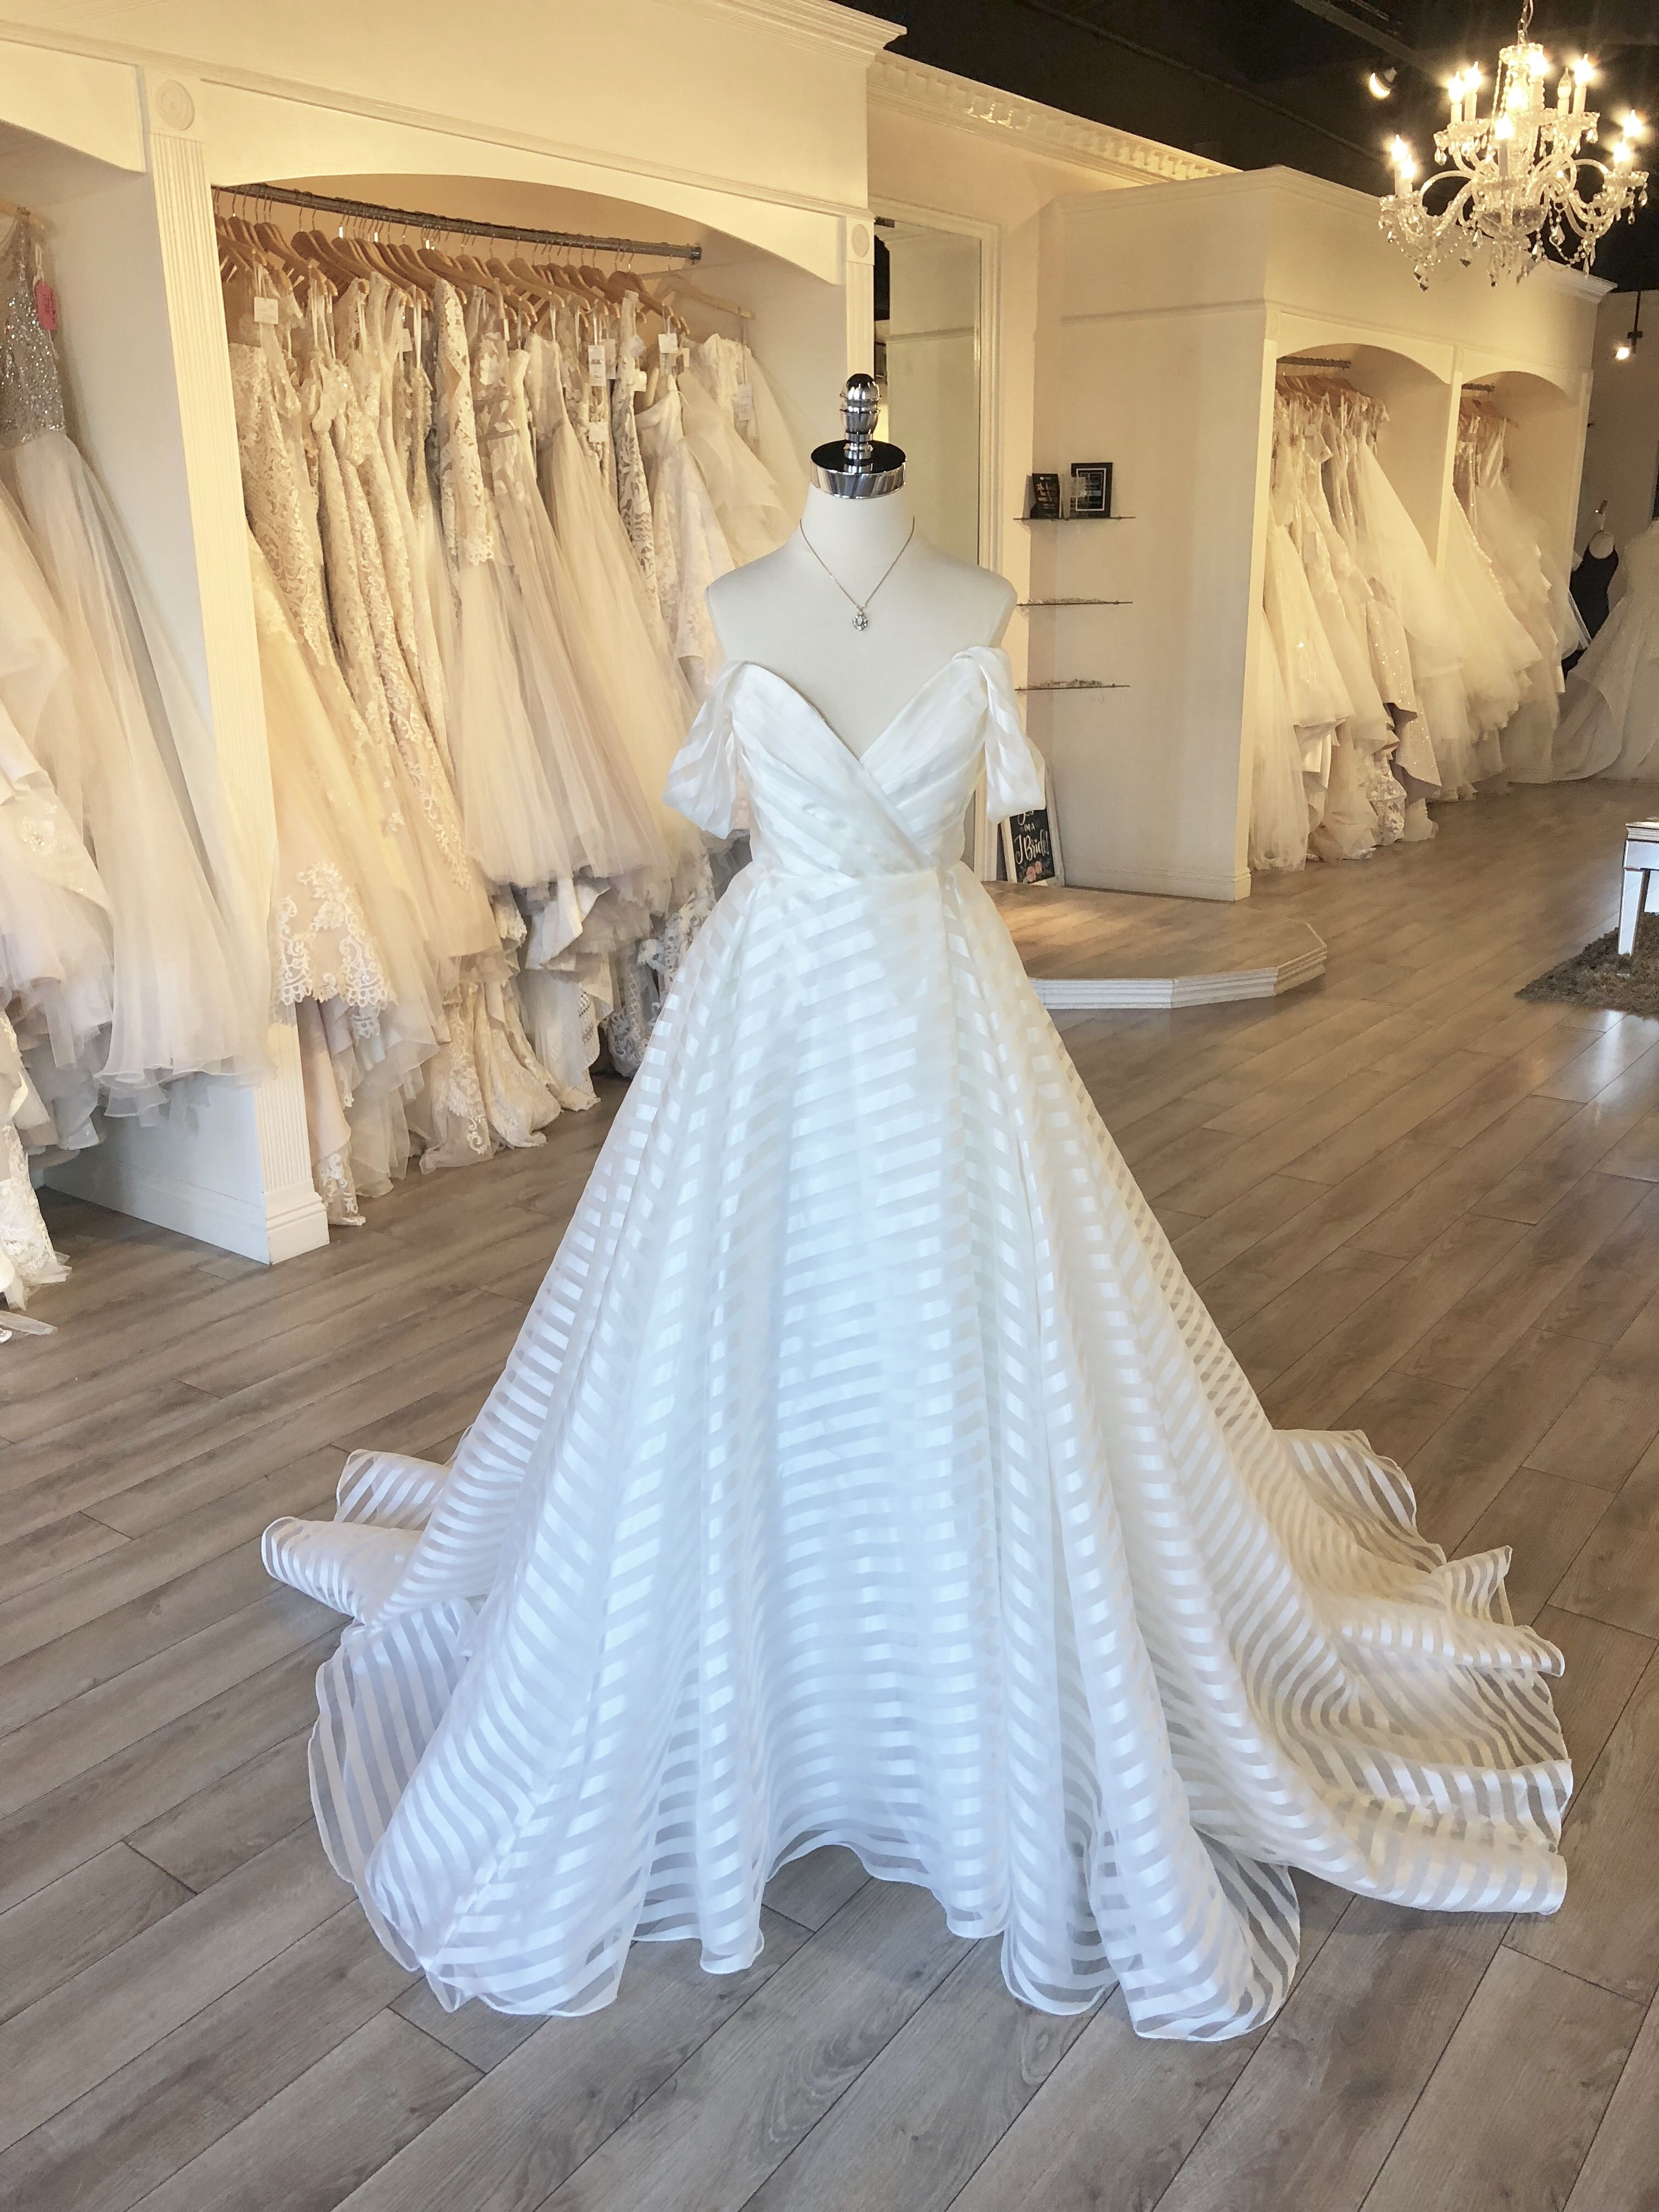 "cab8212aca Hayley Paige ""Harley"" Wedding Gown / Off the Shoulder Striped #weddingdress  / A-Line Ballgown with slit #weddingdresses #hayleypaige"